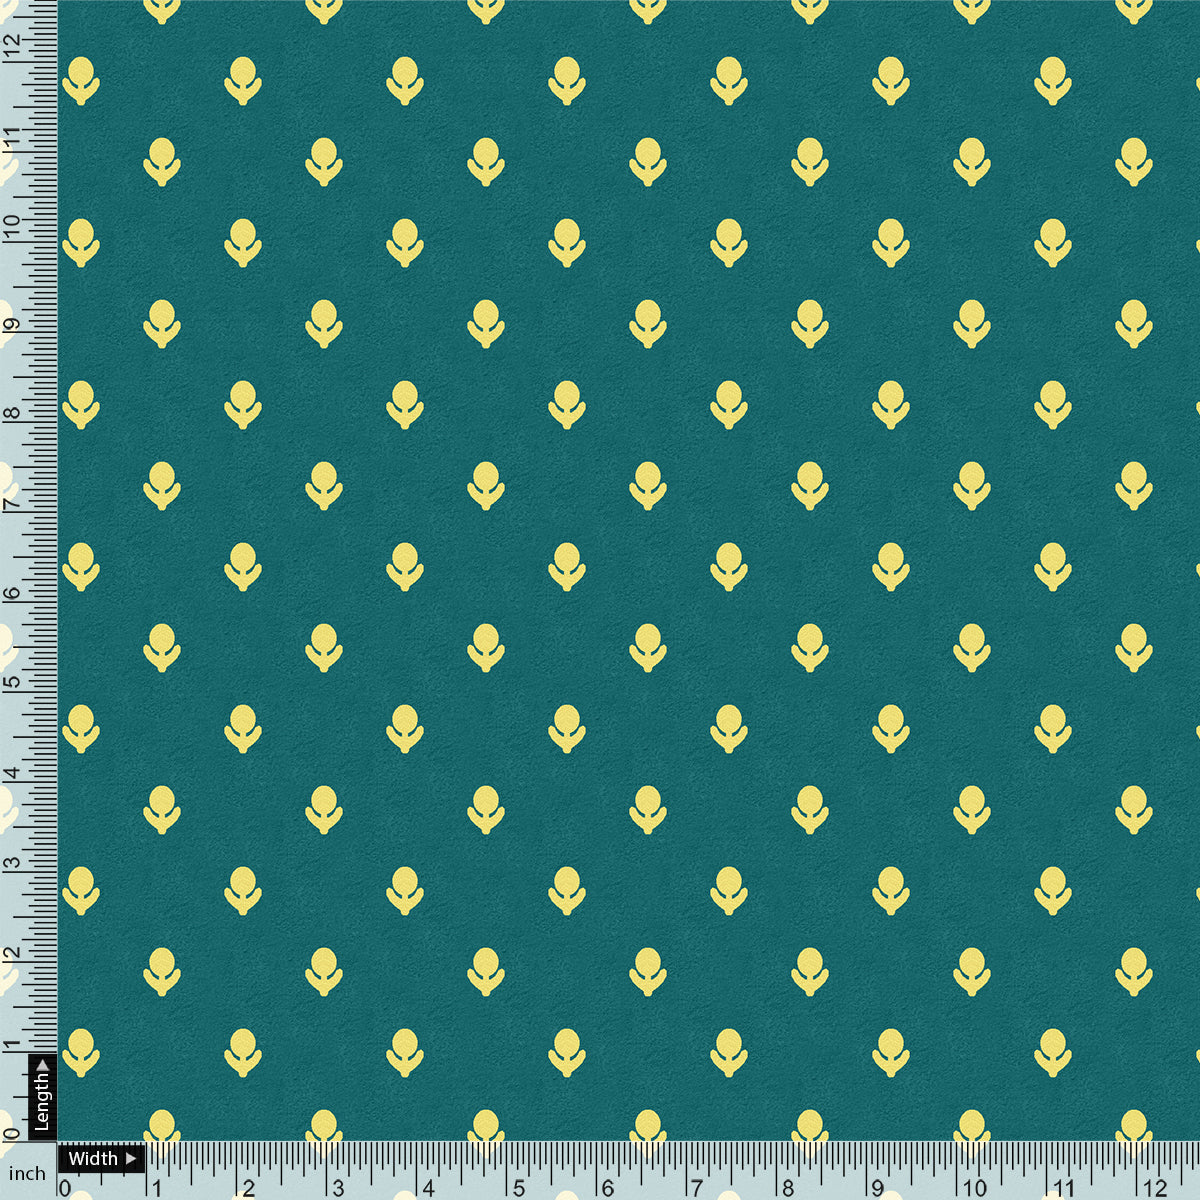 Small and Single Motif Digital Printed Fabric